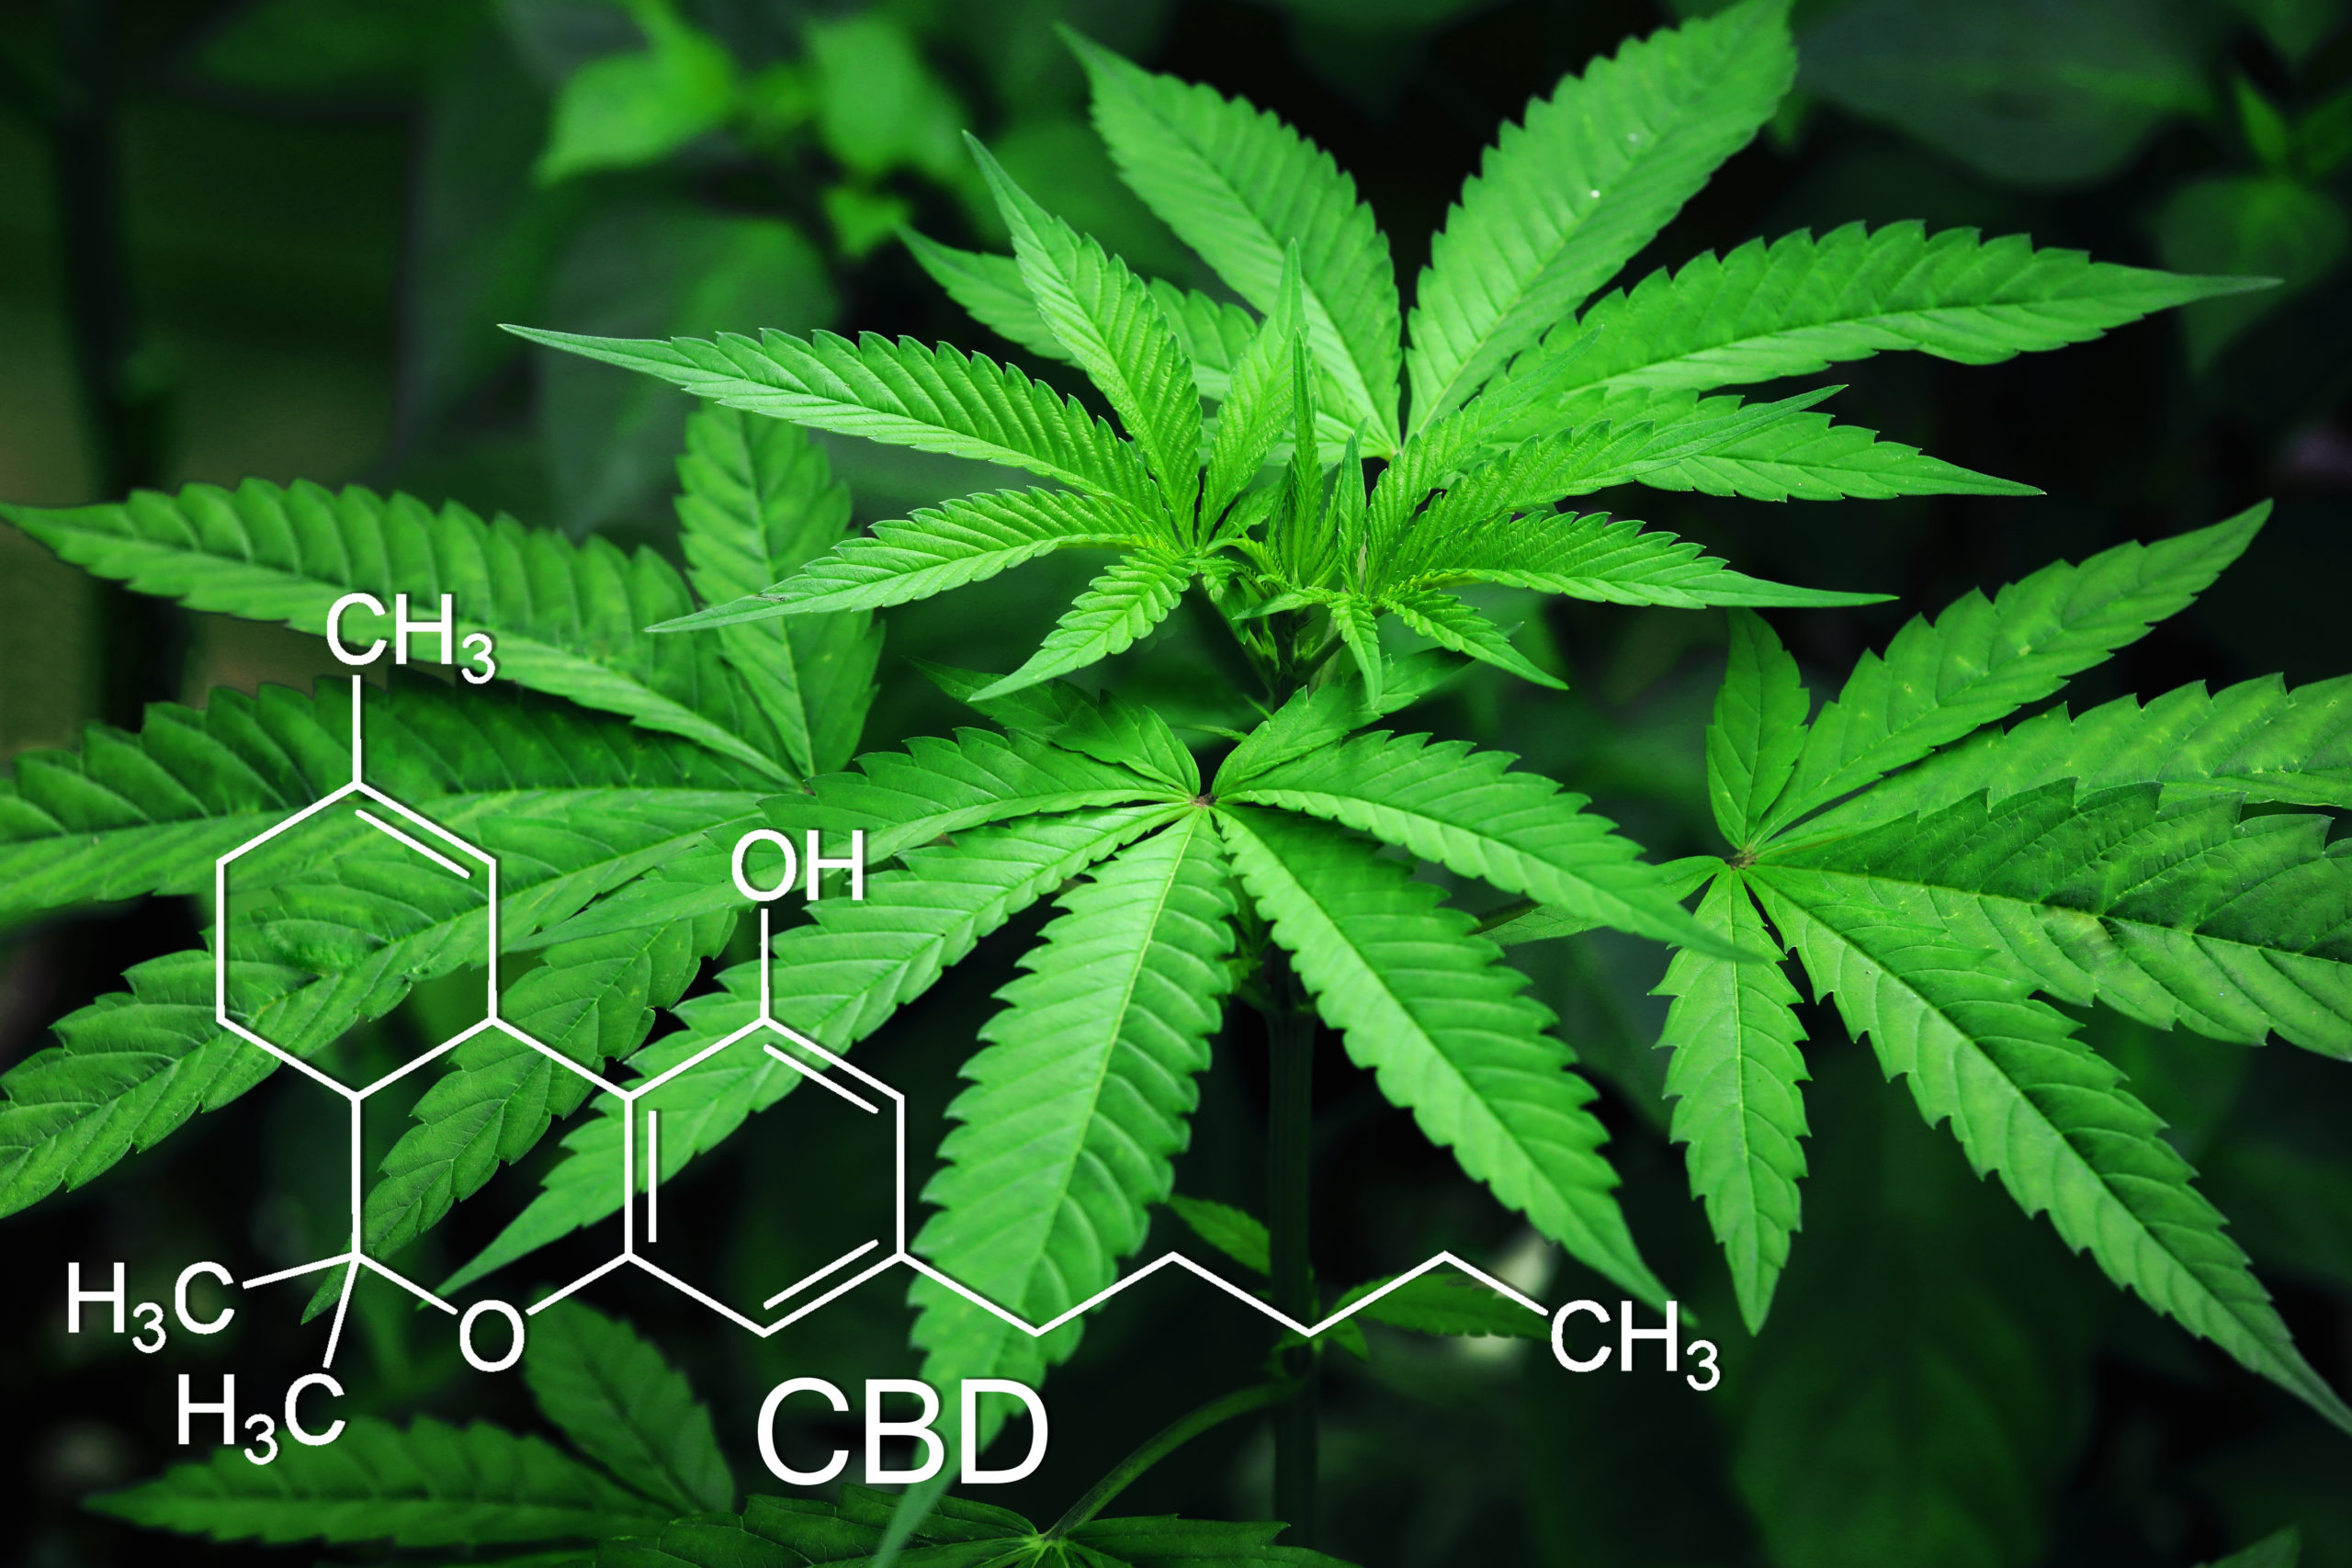 a cannabis plant with the molecular structure of cbd overlaying